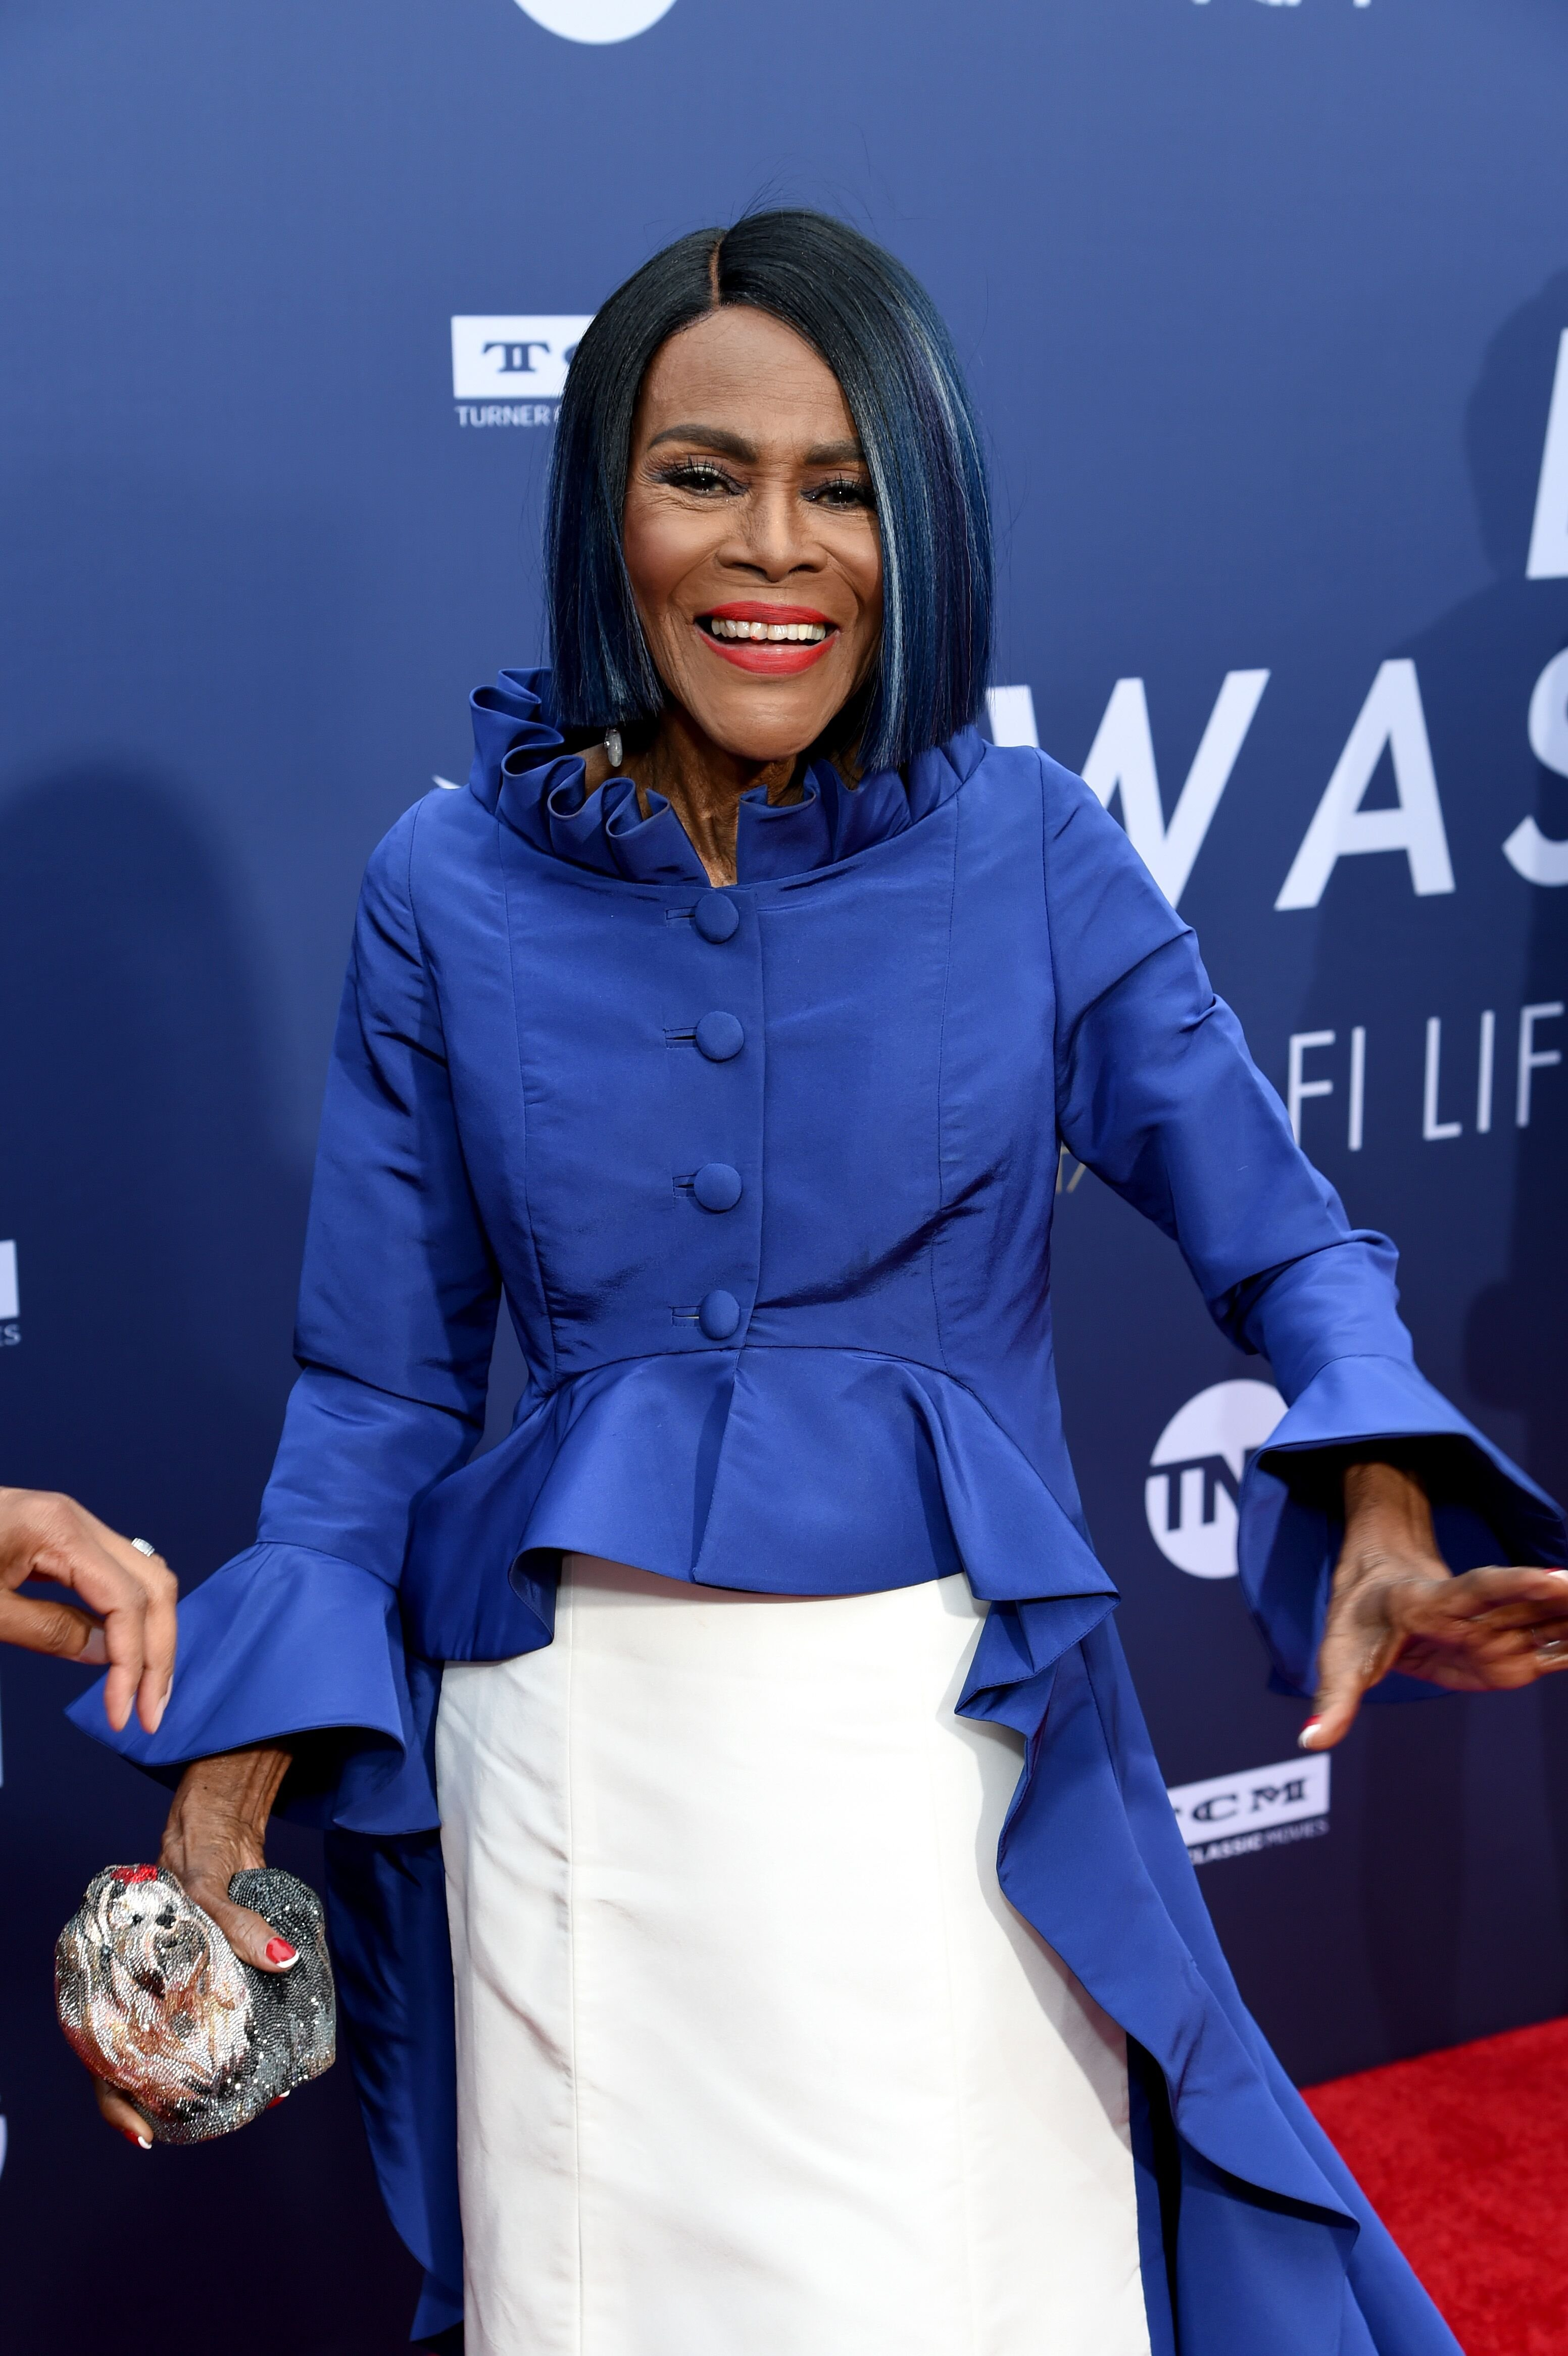 Cicely Tyson attends the AFI Life Achievement Award 2019 | Source: Getty Images/GlobalImagesUkraine